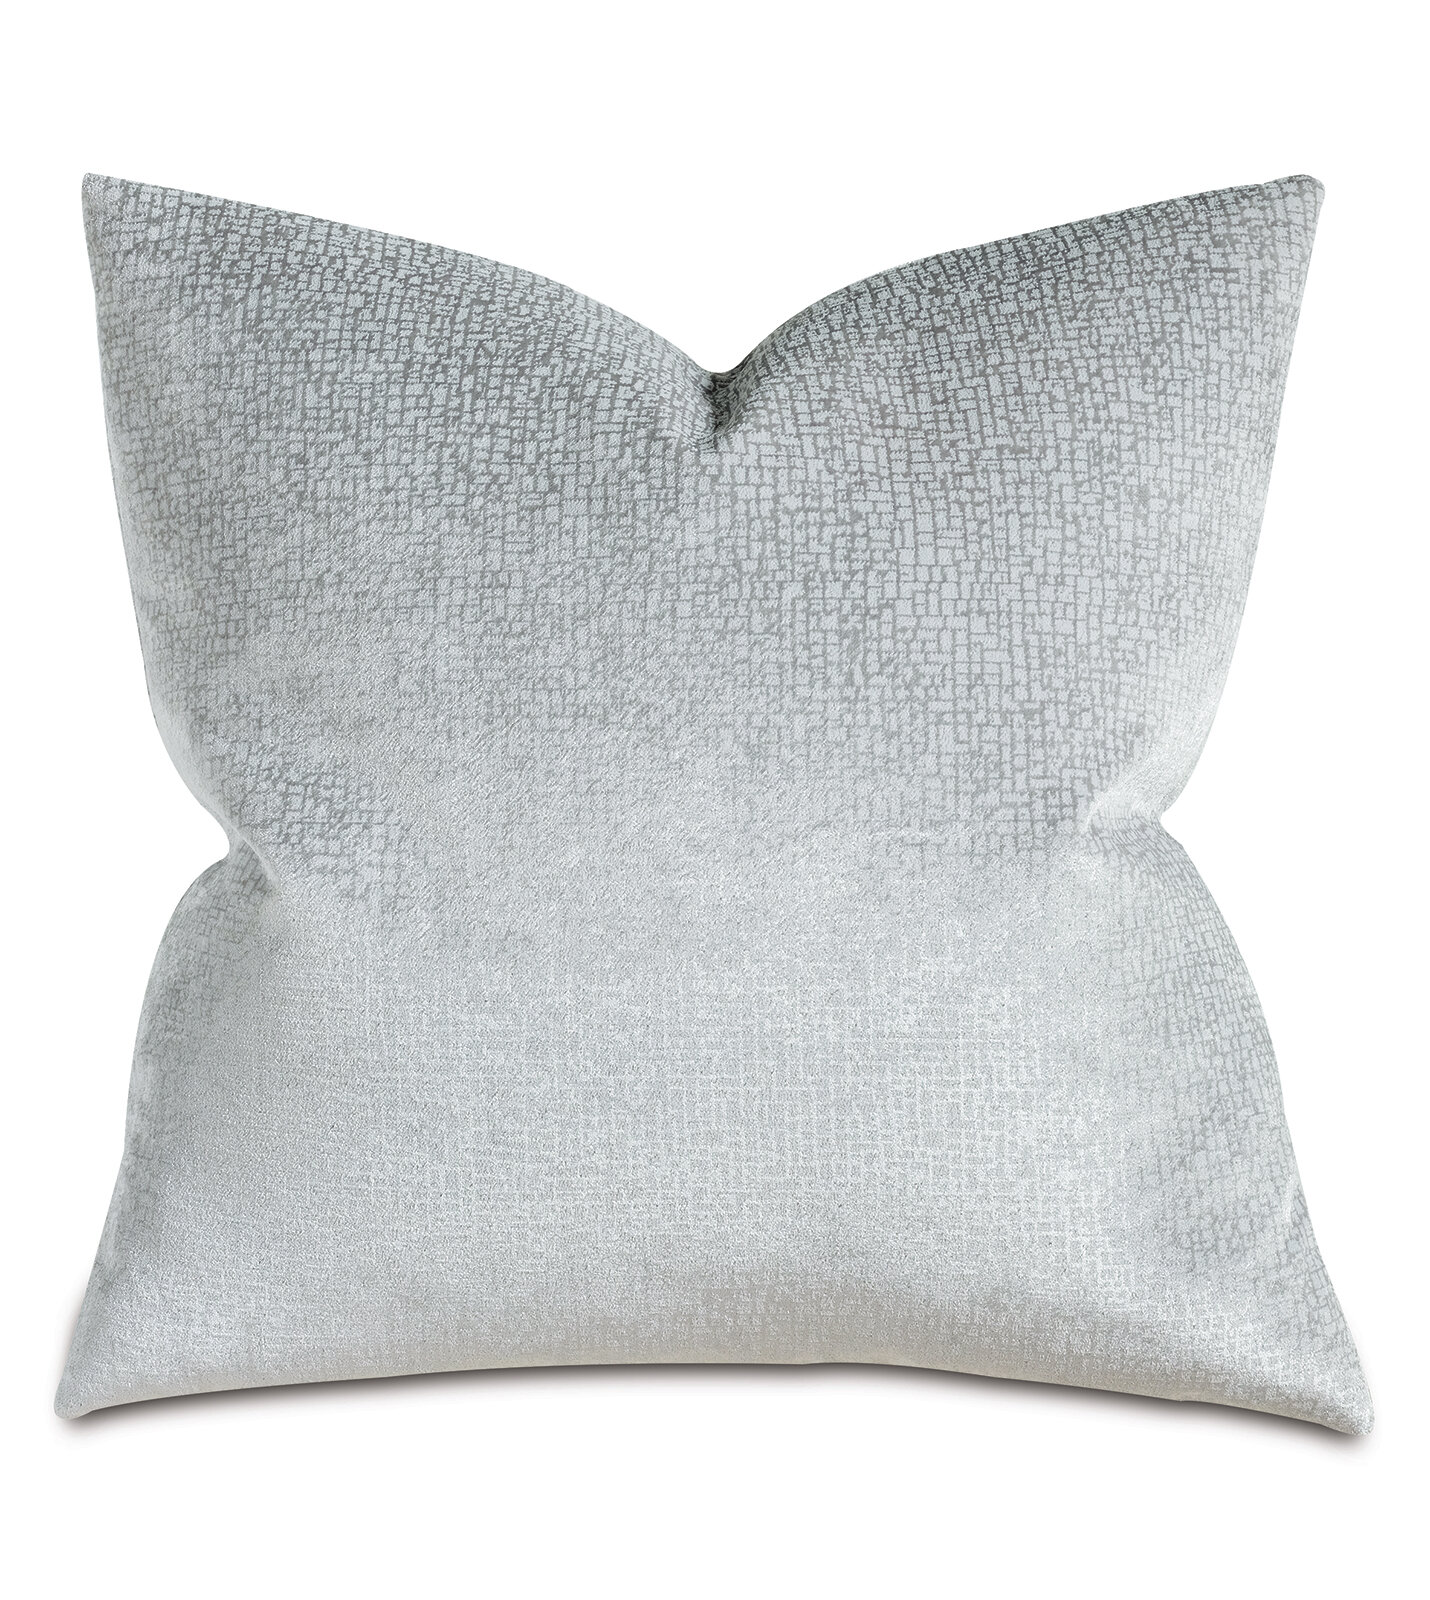 Eastern Accents Geode Luxe Abstract Throw Pillow Perigold